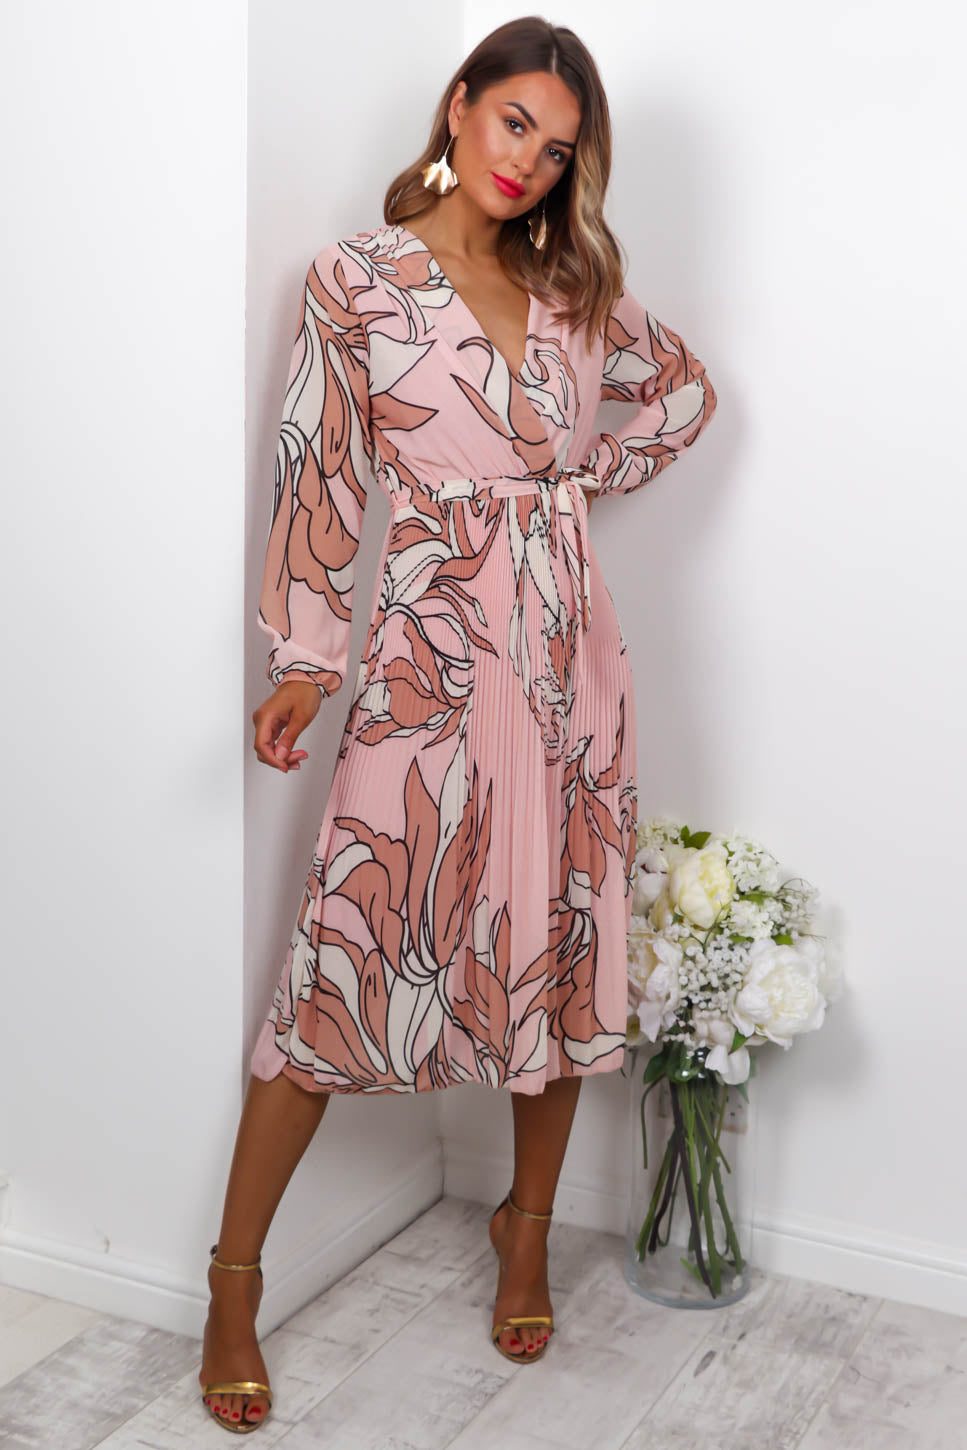 Flower Of Love - Midi Dress In PINK/BEIGE